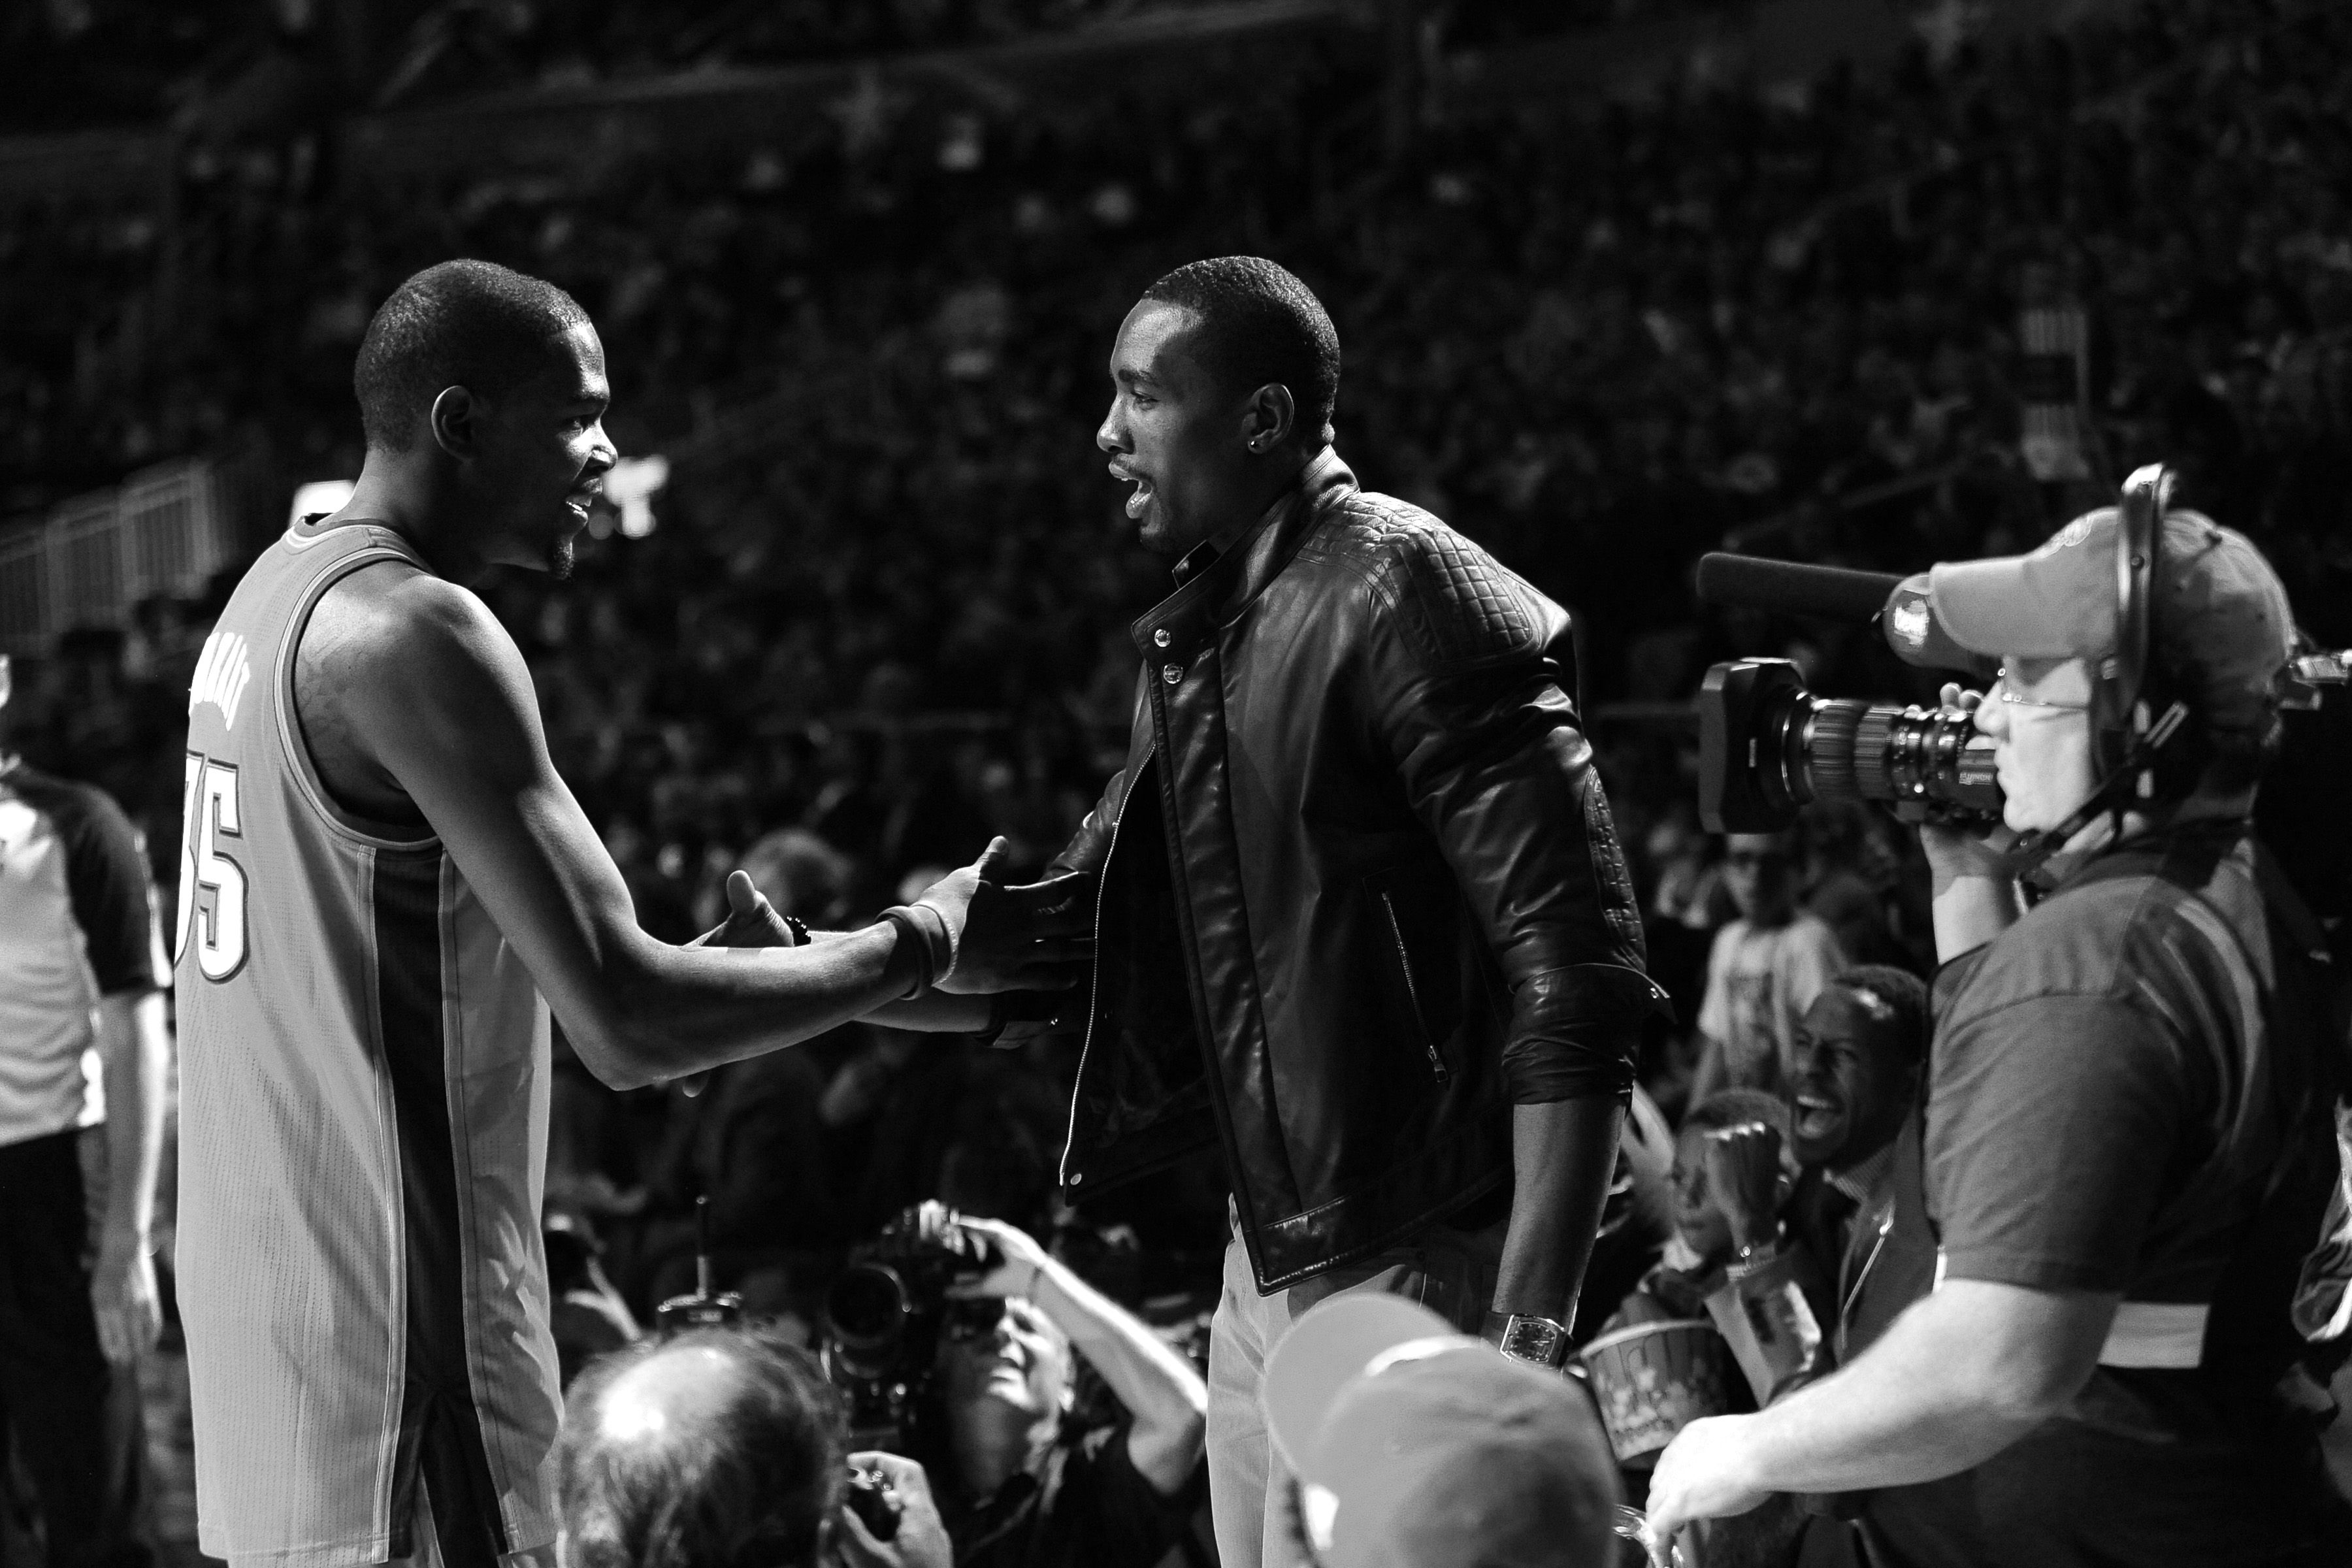 ORLANDO, FL - FEBRUARY 25: Kevin Durant #35 and Serge Ibaka #9 of the Oklahoma City Thunder shake hands during the Foot Locker Three-Point Contest as part of 2012 All-Star Weekend at the Amway Center on February 25, 2012 in Orlando, Florida. NOTE TO USER: User expressly acknowledges and agrees that, by downloading and/or using this photograph, user is consenting to the terms and conditions of the Getty Images License Agreement. Mandatory Copyright Notice: Copyright 2012 NBAE (Photo by Noah Graham/NBAE via Getty Images)